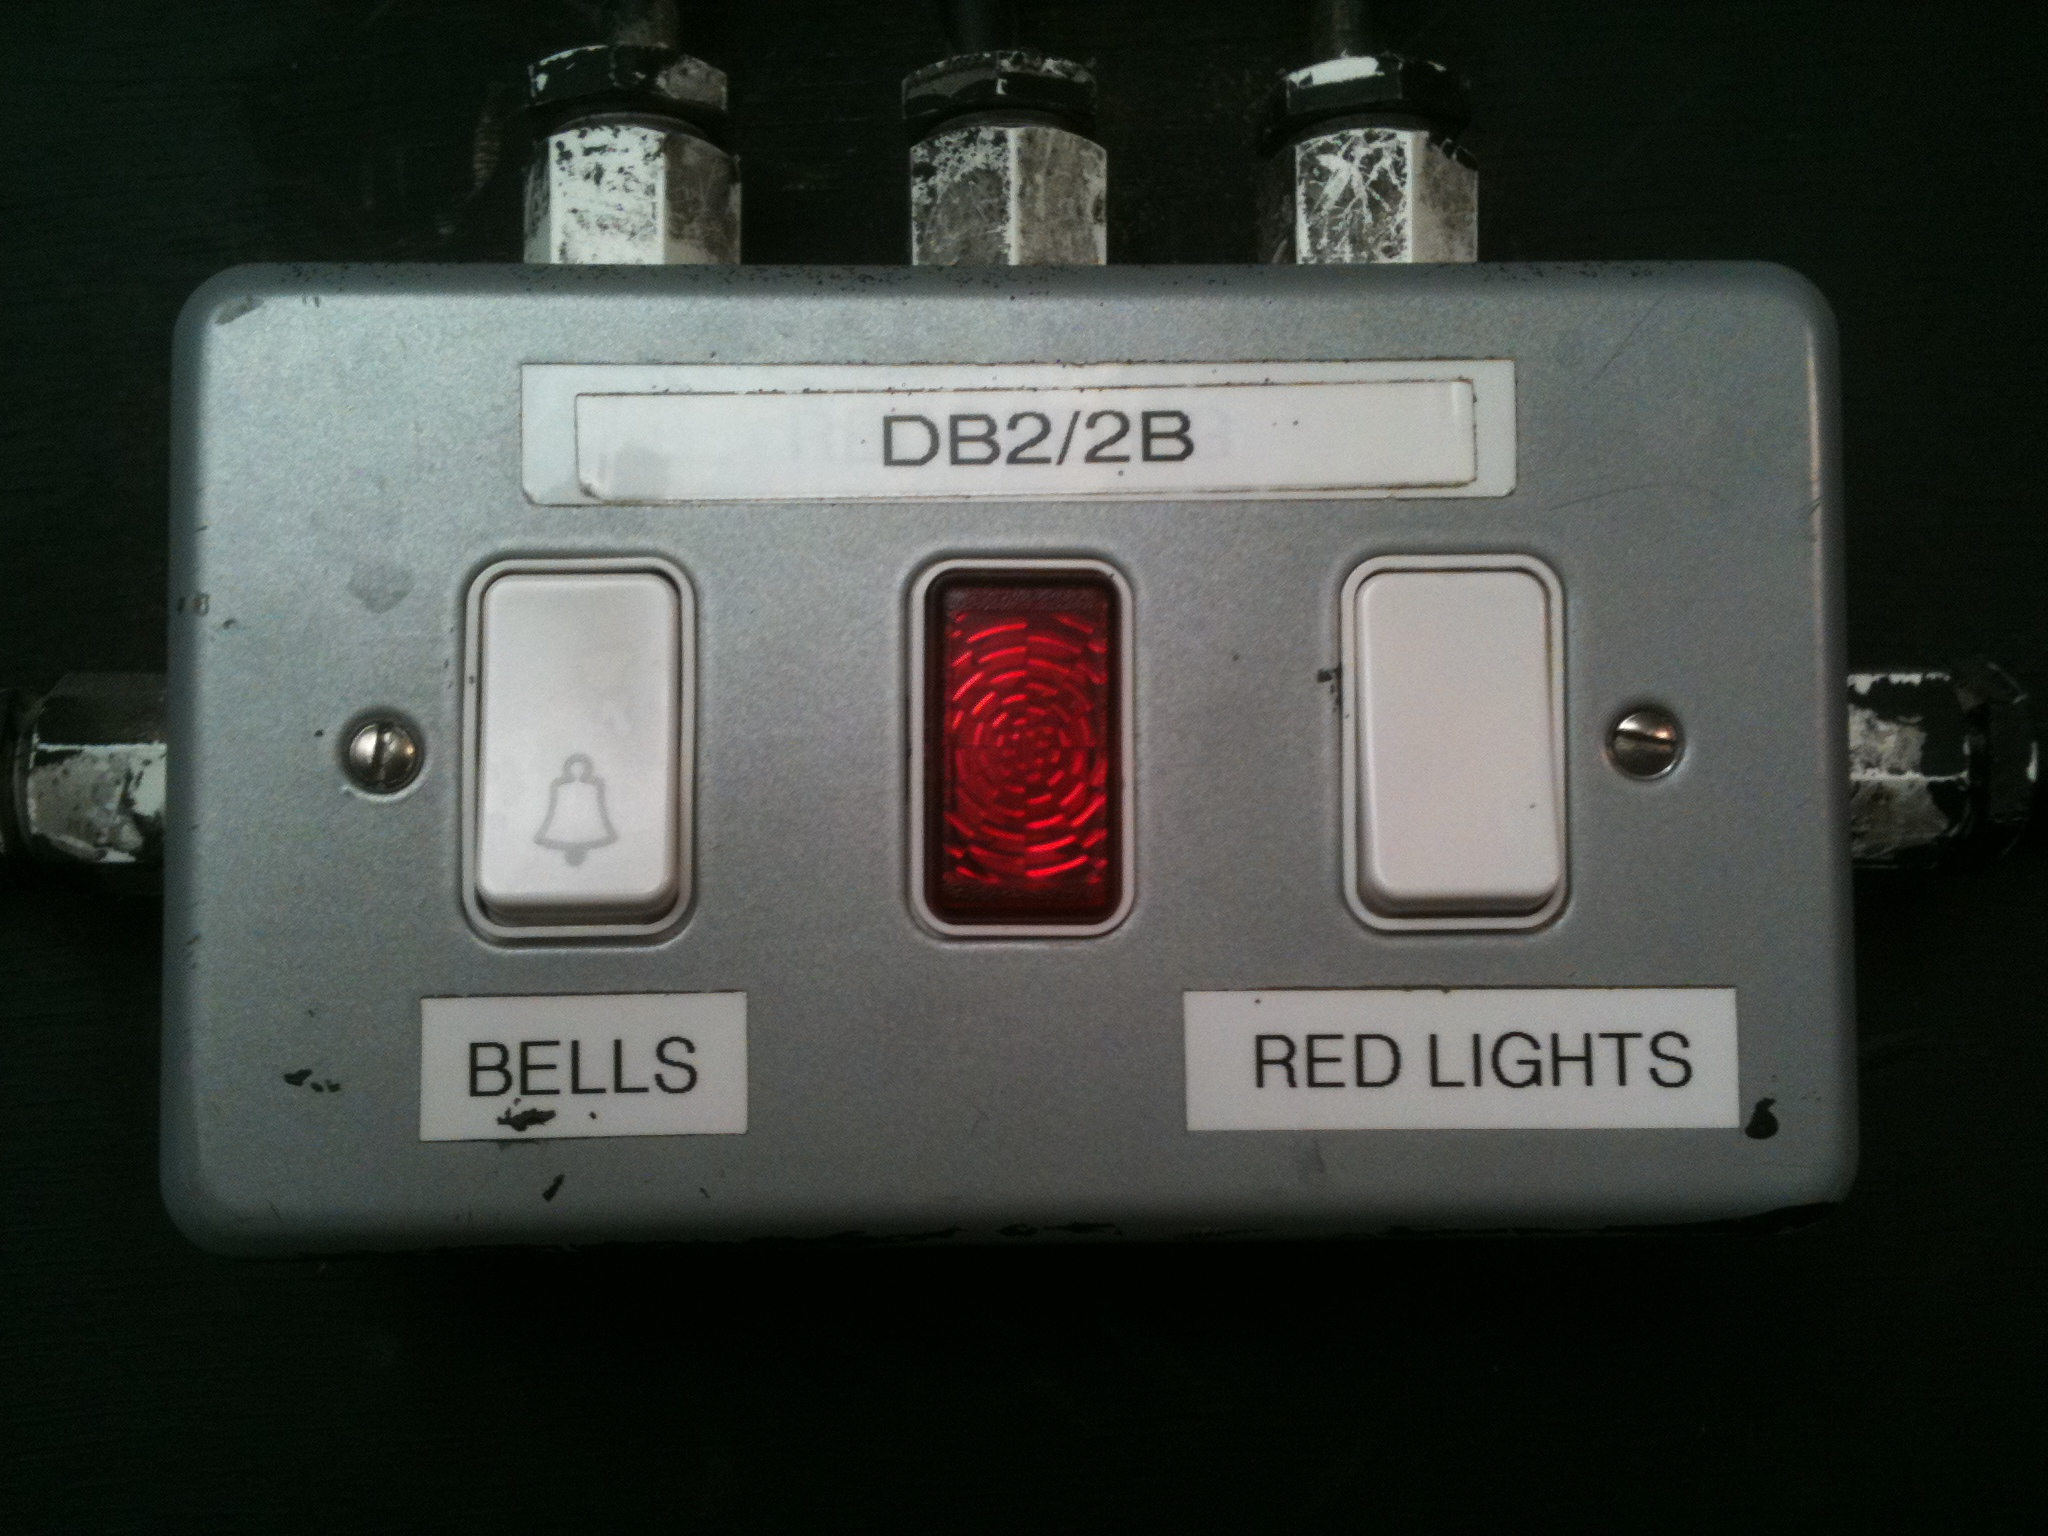 Red Light & Bell - Floor Runners